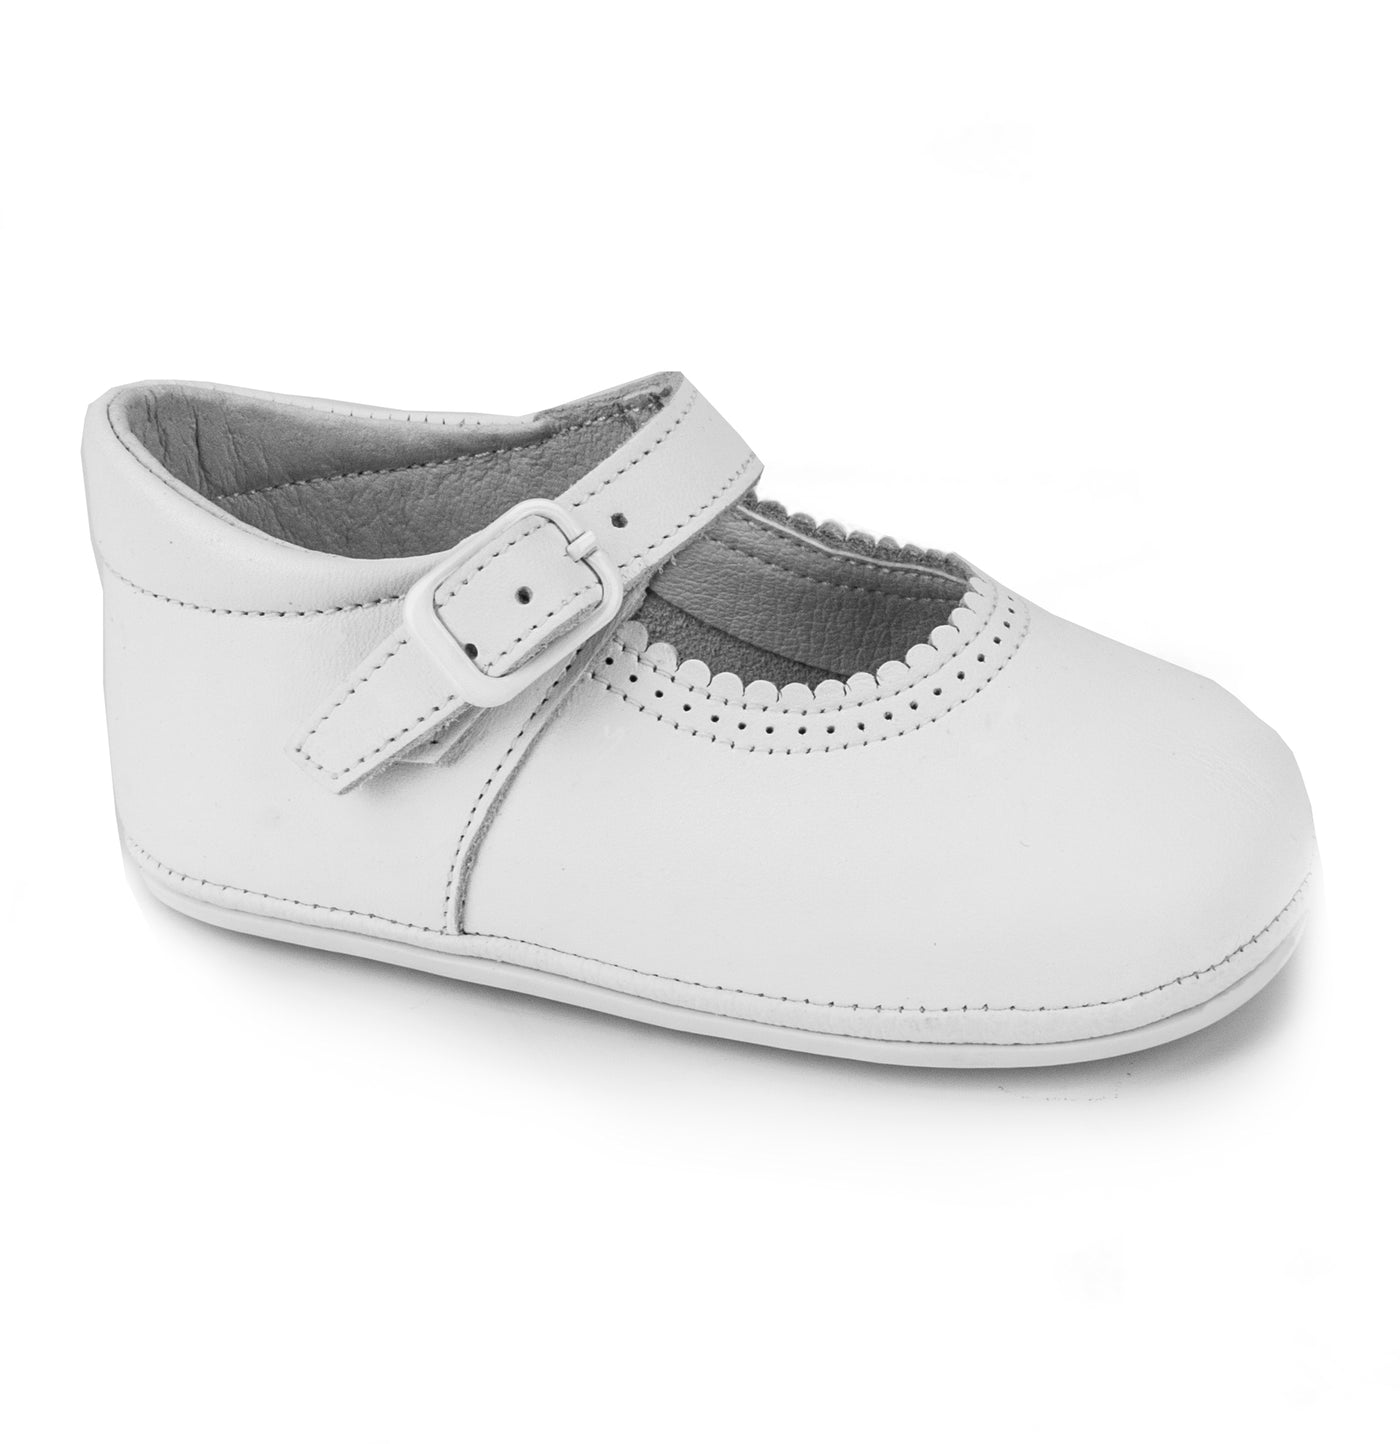 Patucos Soft Leather Mary Janes White Shoes for girls